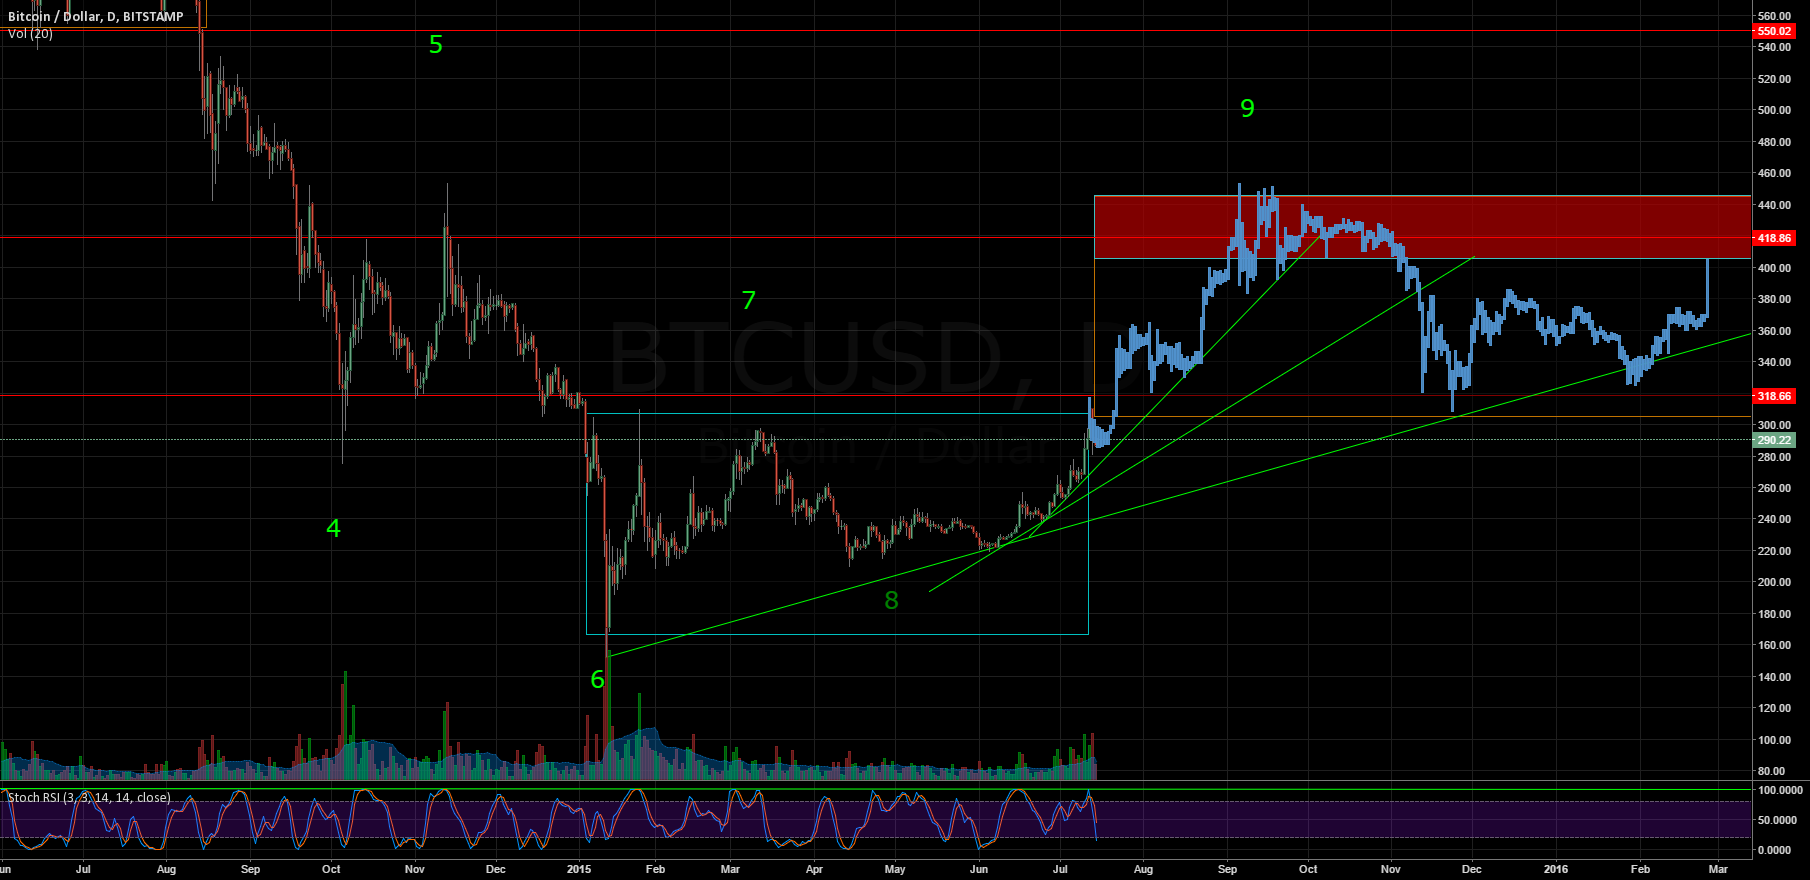 Update from previous idea: bullish fractal still remains valid